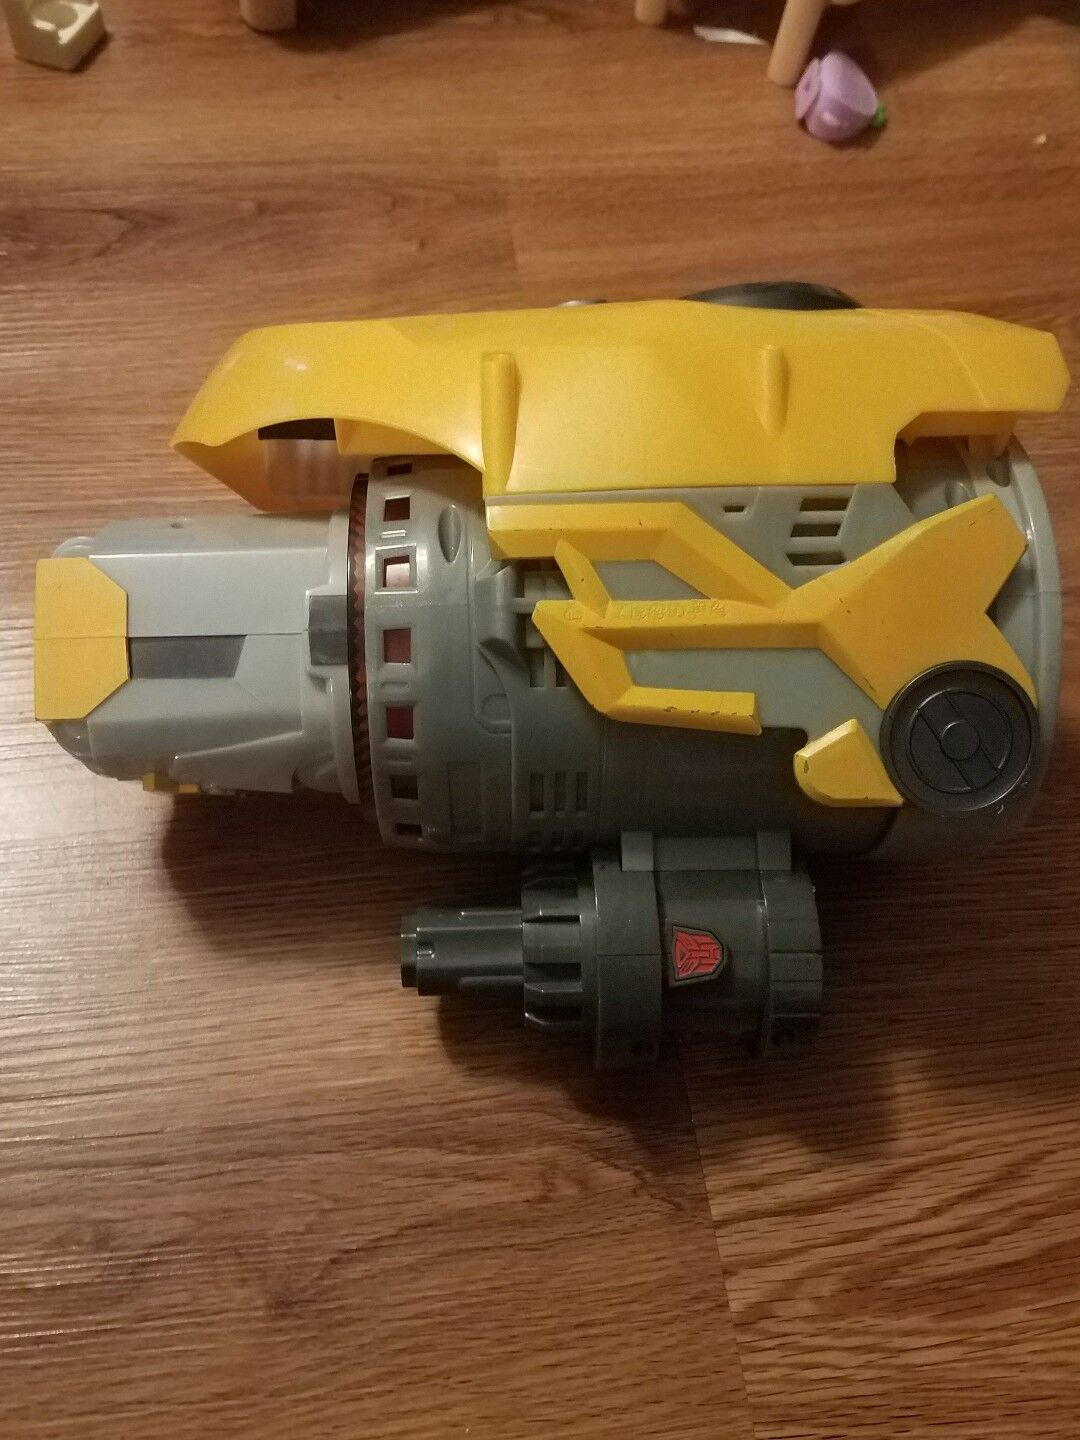 Transformers Bumblebee Yellow Plasma Cannon Blaster Arm Gun Sounds WORKS